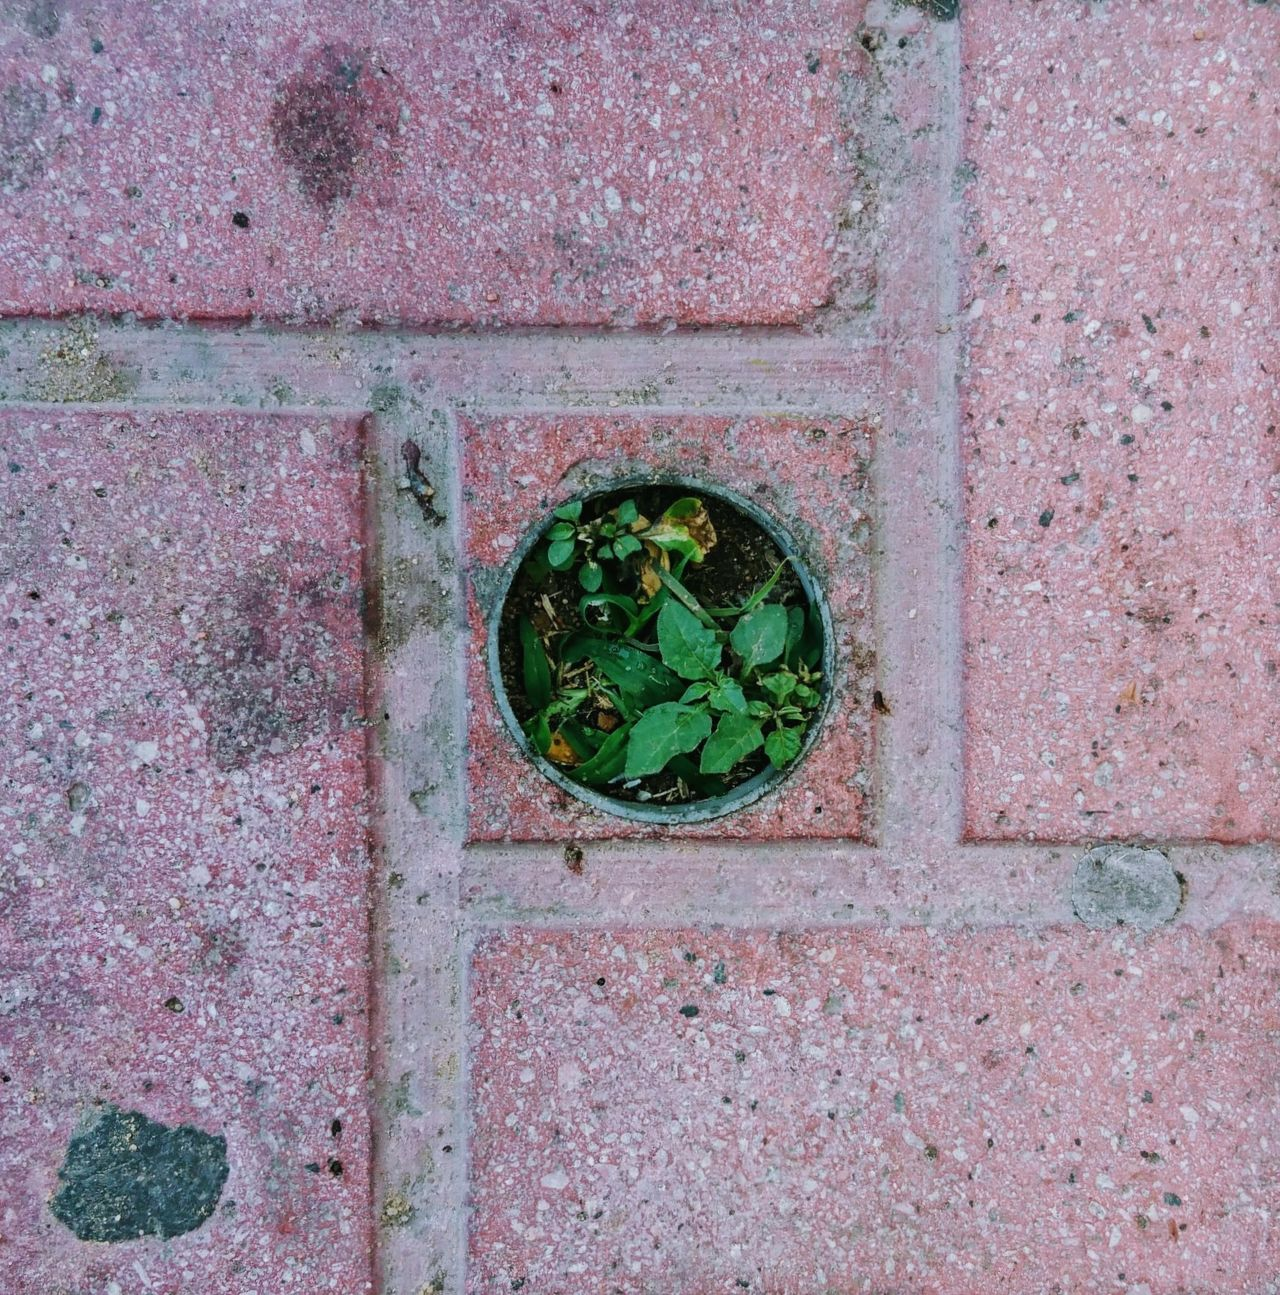 Green circle 🌱 Day Green Color No People Outdoors Close-up Green Plants Plants 🌱 Streetphotography Street Street Plants Self Grown Multi Colored Pink Grass Travel Traveling High Angle View Up Above EyeEm EyeEm Best Shots EyeEm Nature Lover EyeEm New Here